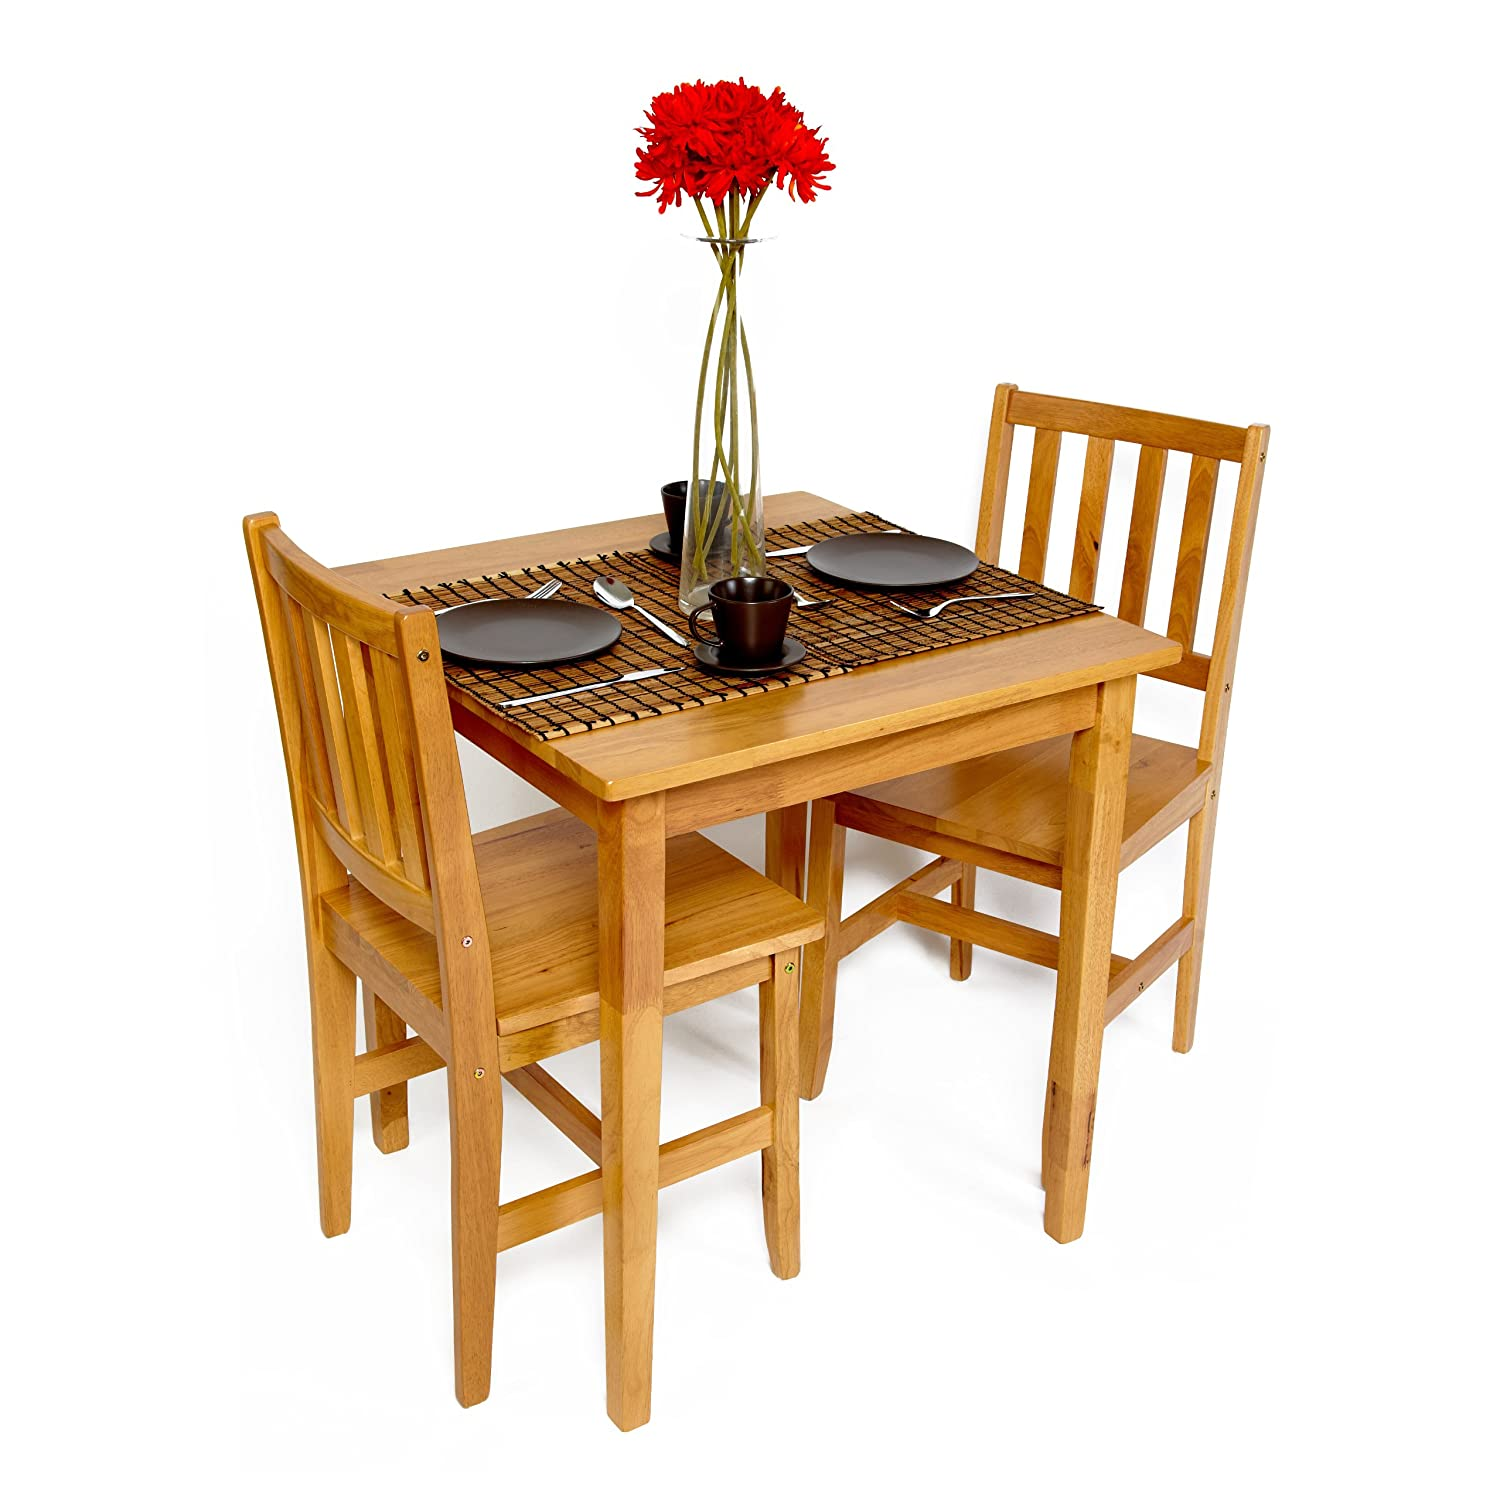 Table and chairs set dining bistro small cafe tables wood for Kitchen dining sets on sale